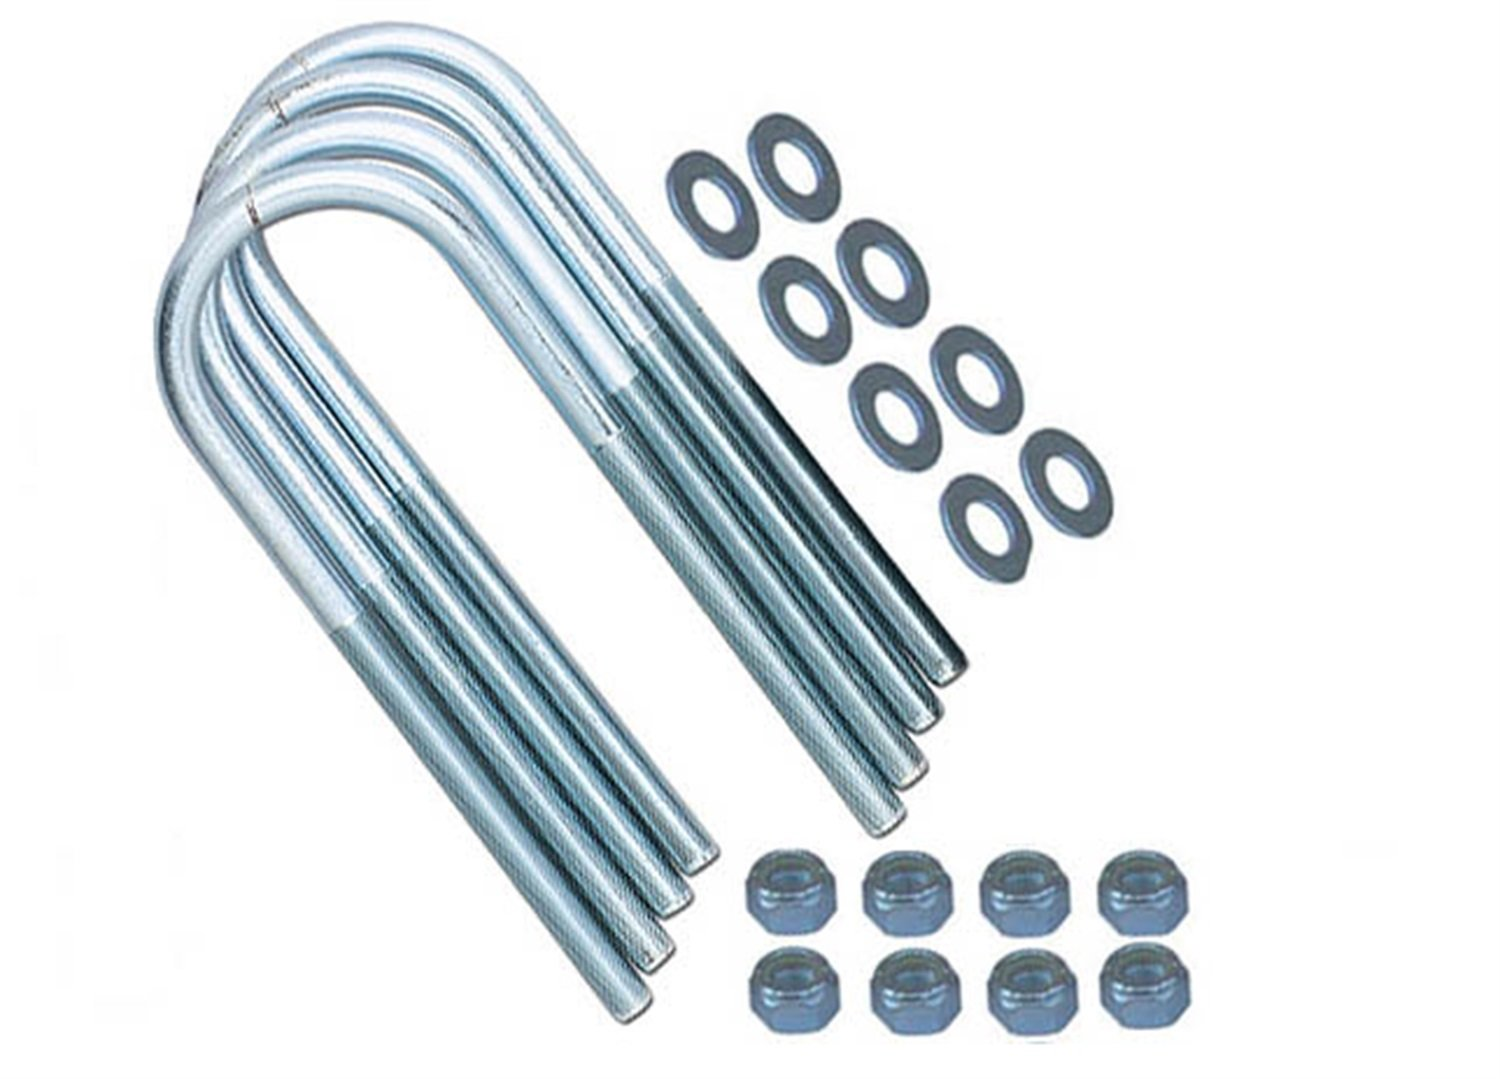 Rubicon Express RE1220 2.75' x 9' x 1/2' U-Bolt Kit